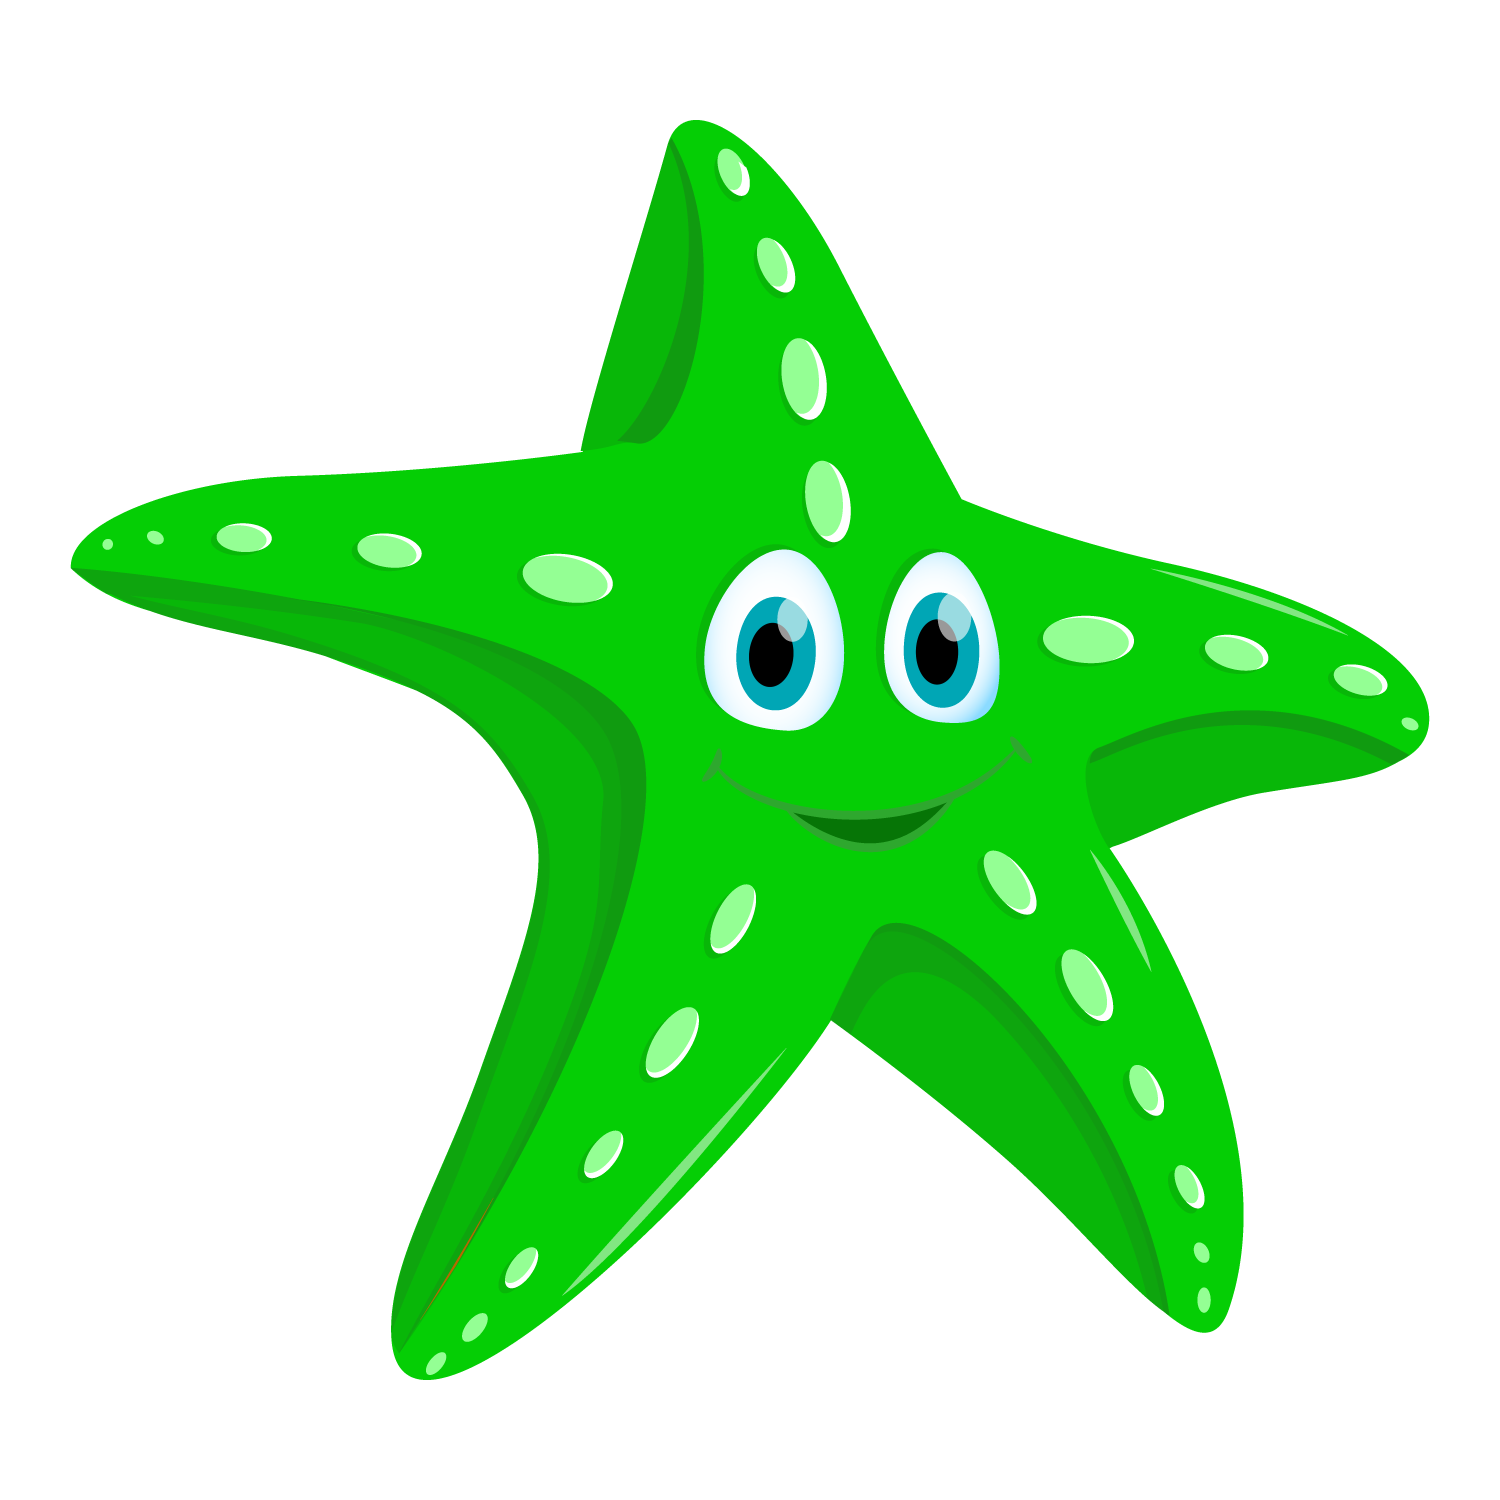 Green clipart starfish, Green starfish Transparent FREE for.